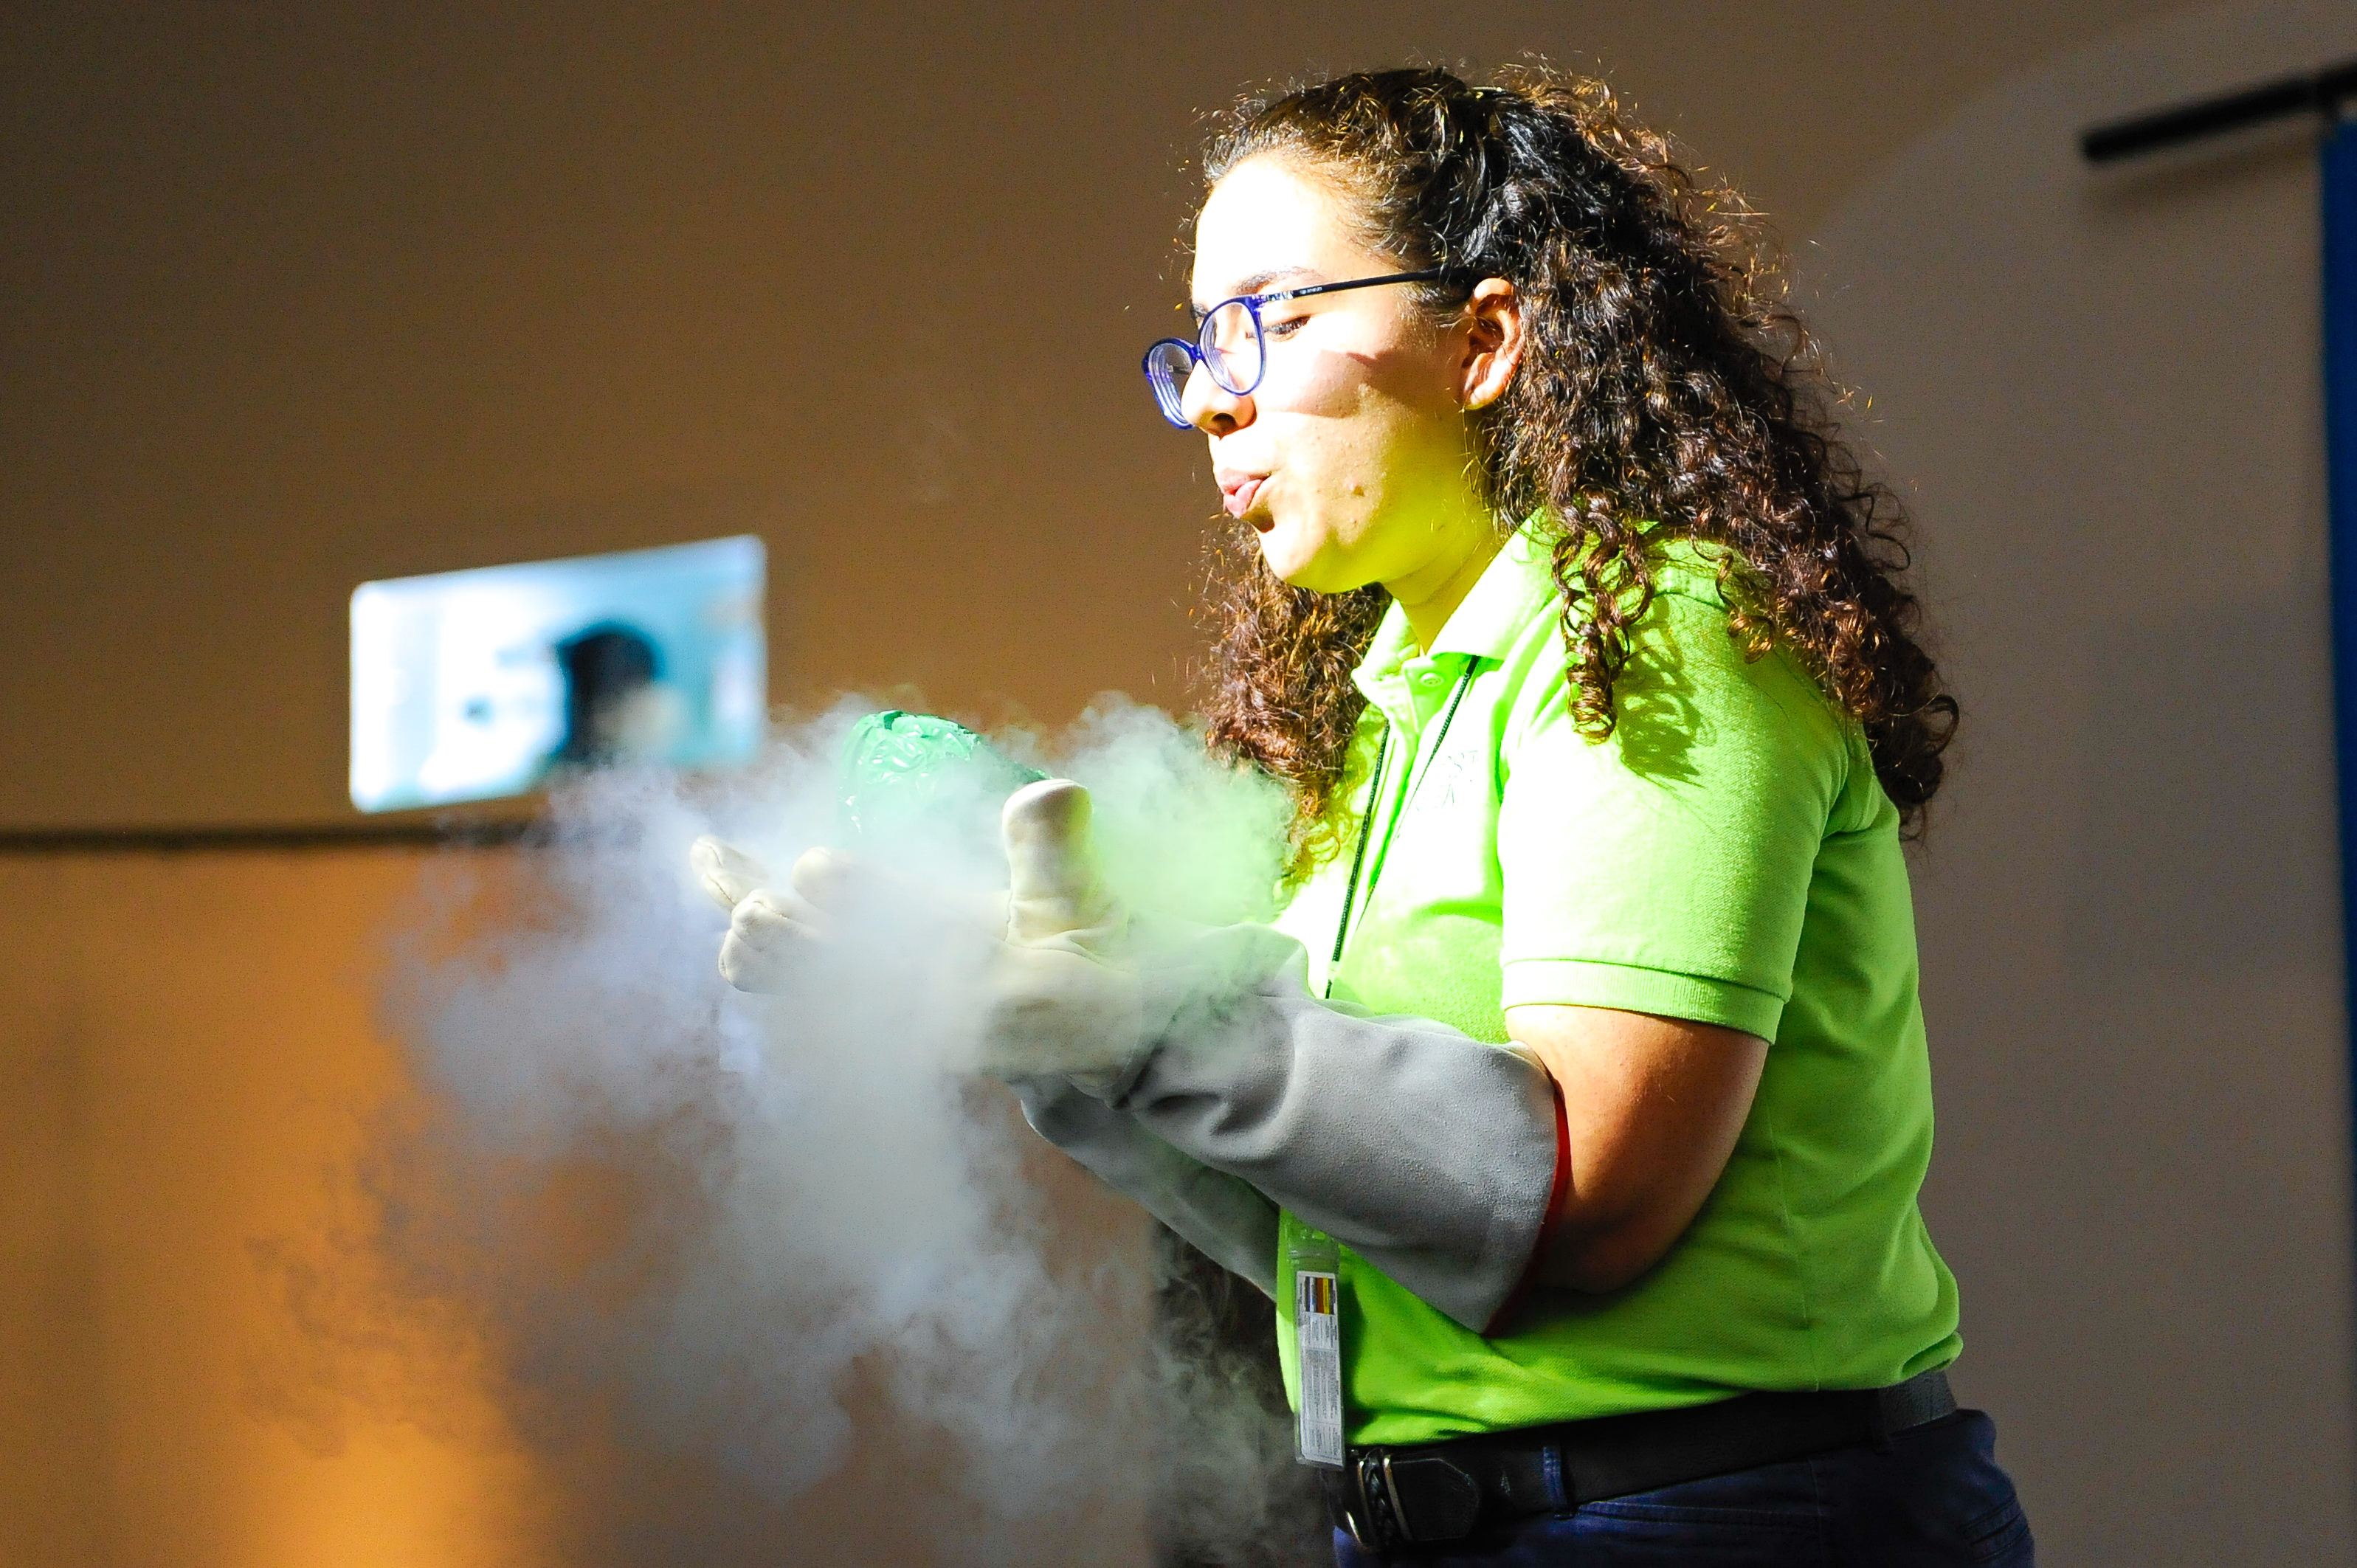 PHOTO MIAMI, FL - February 09: Frost Science Overnight Adventure on February 09, 2018 in Miami, Florida. (Photo by Sergi Alexander / Eyeworks Production).